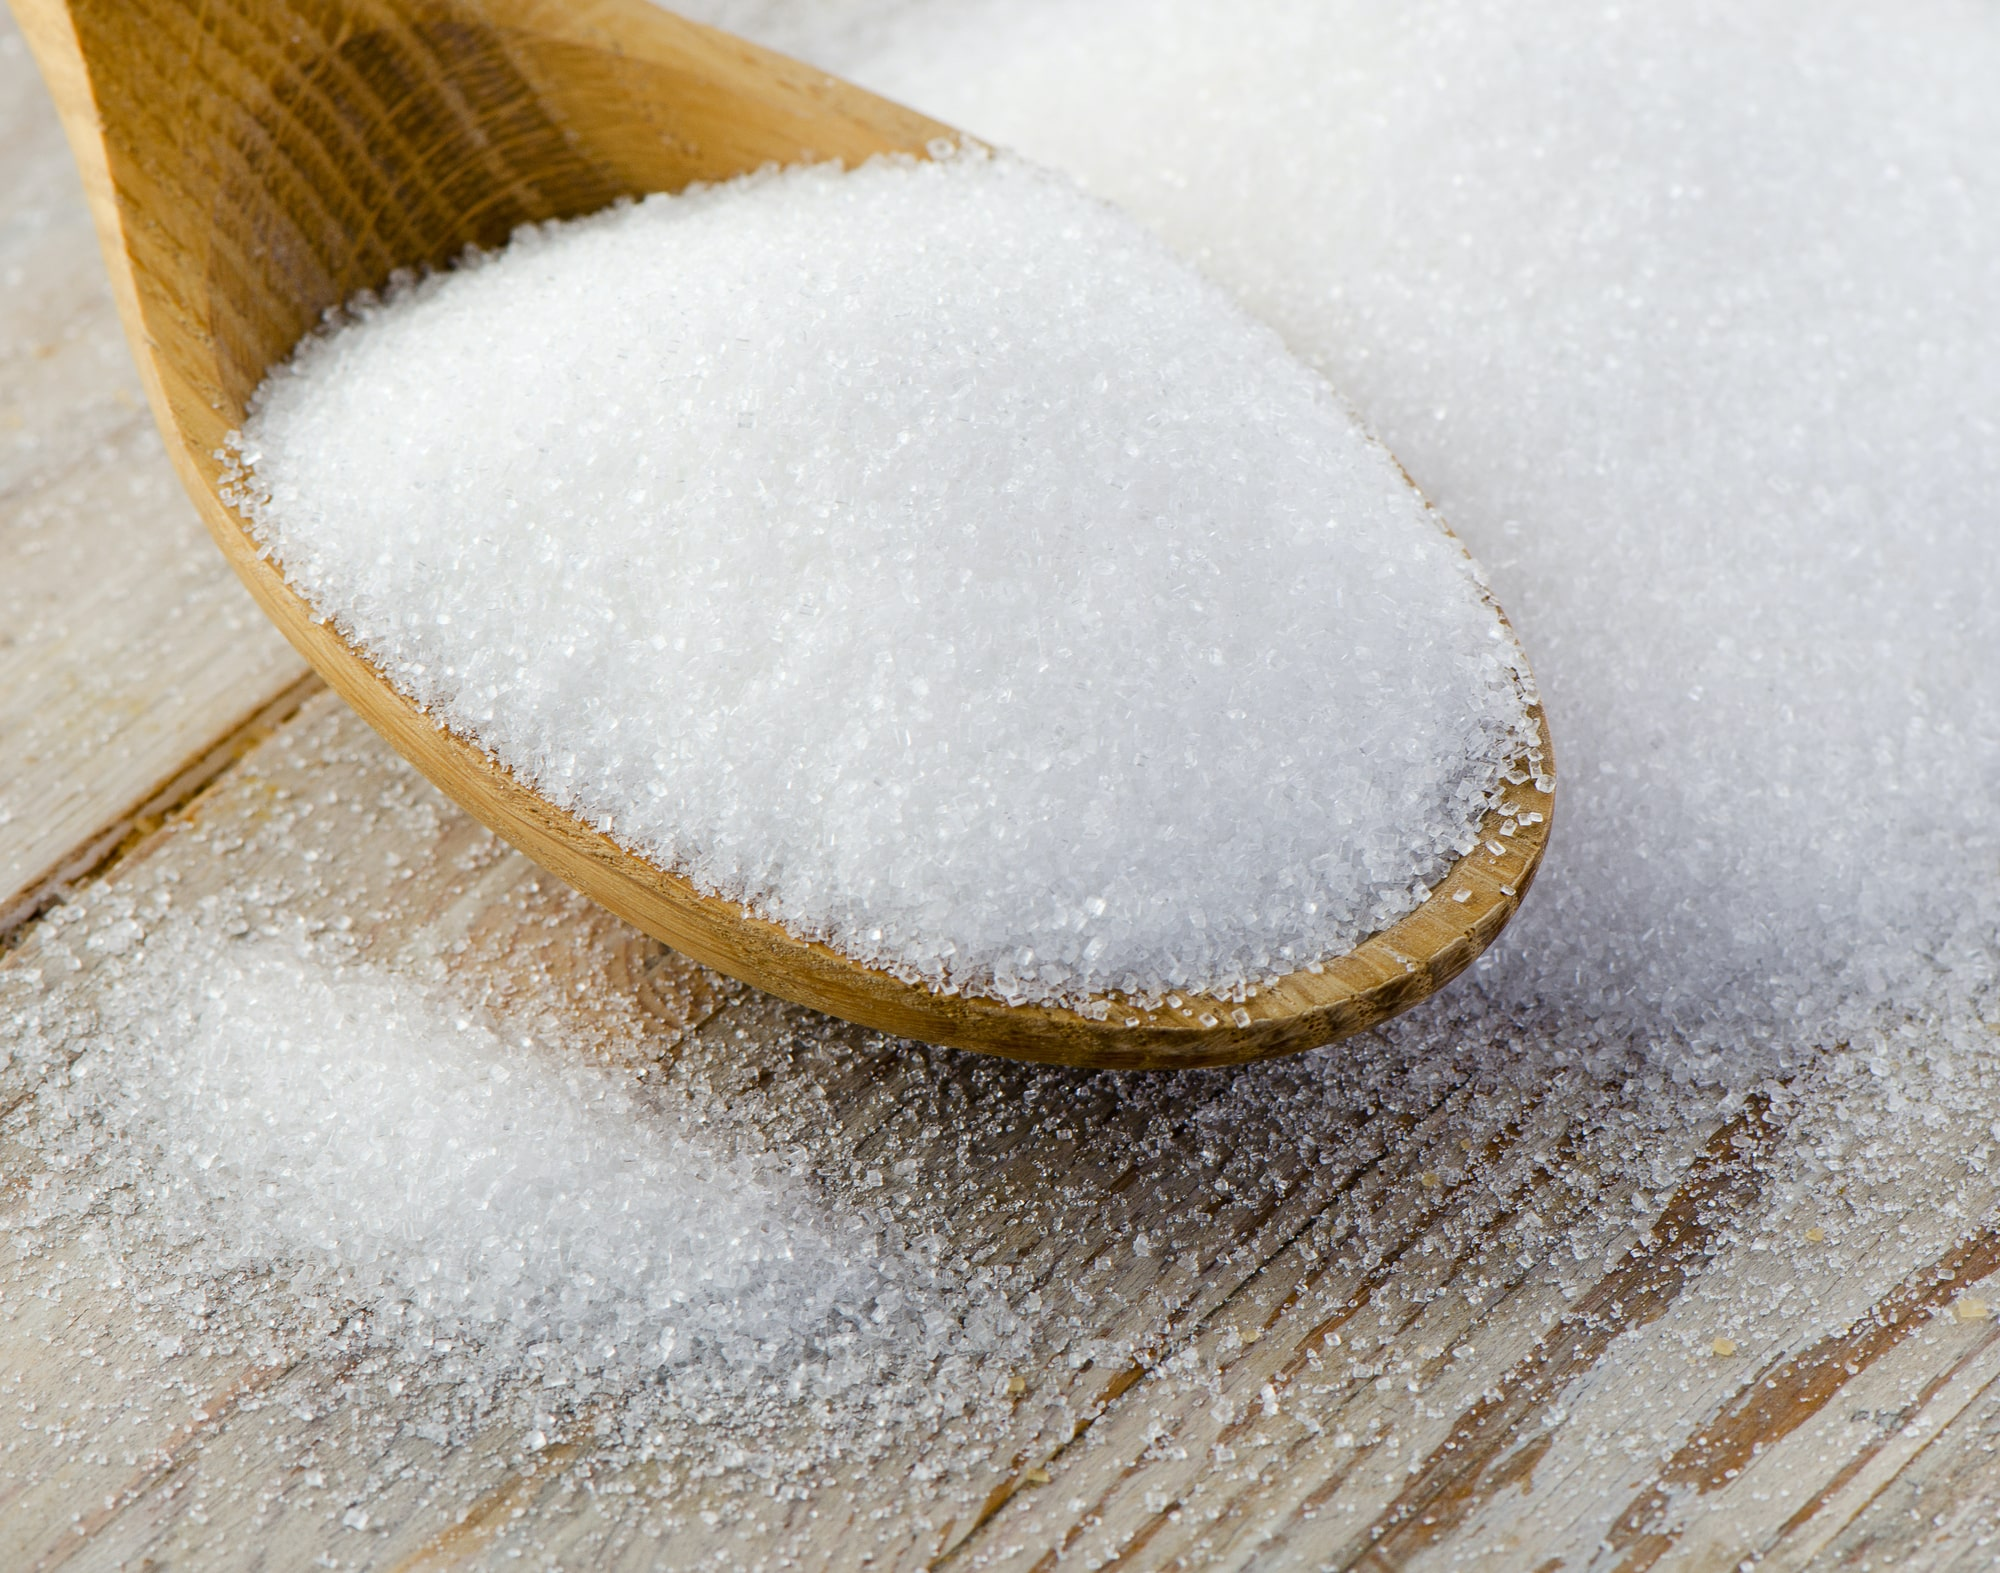 White sugar vs raw sugar